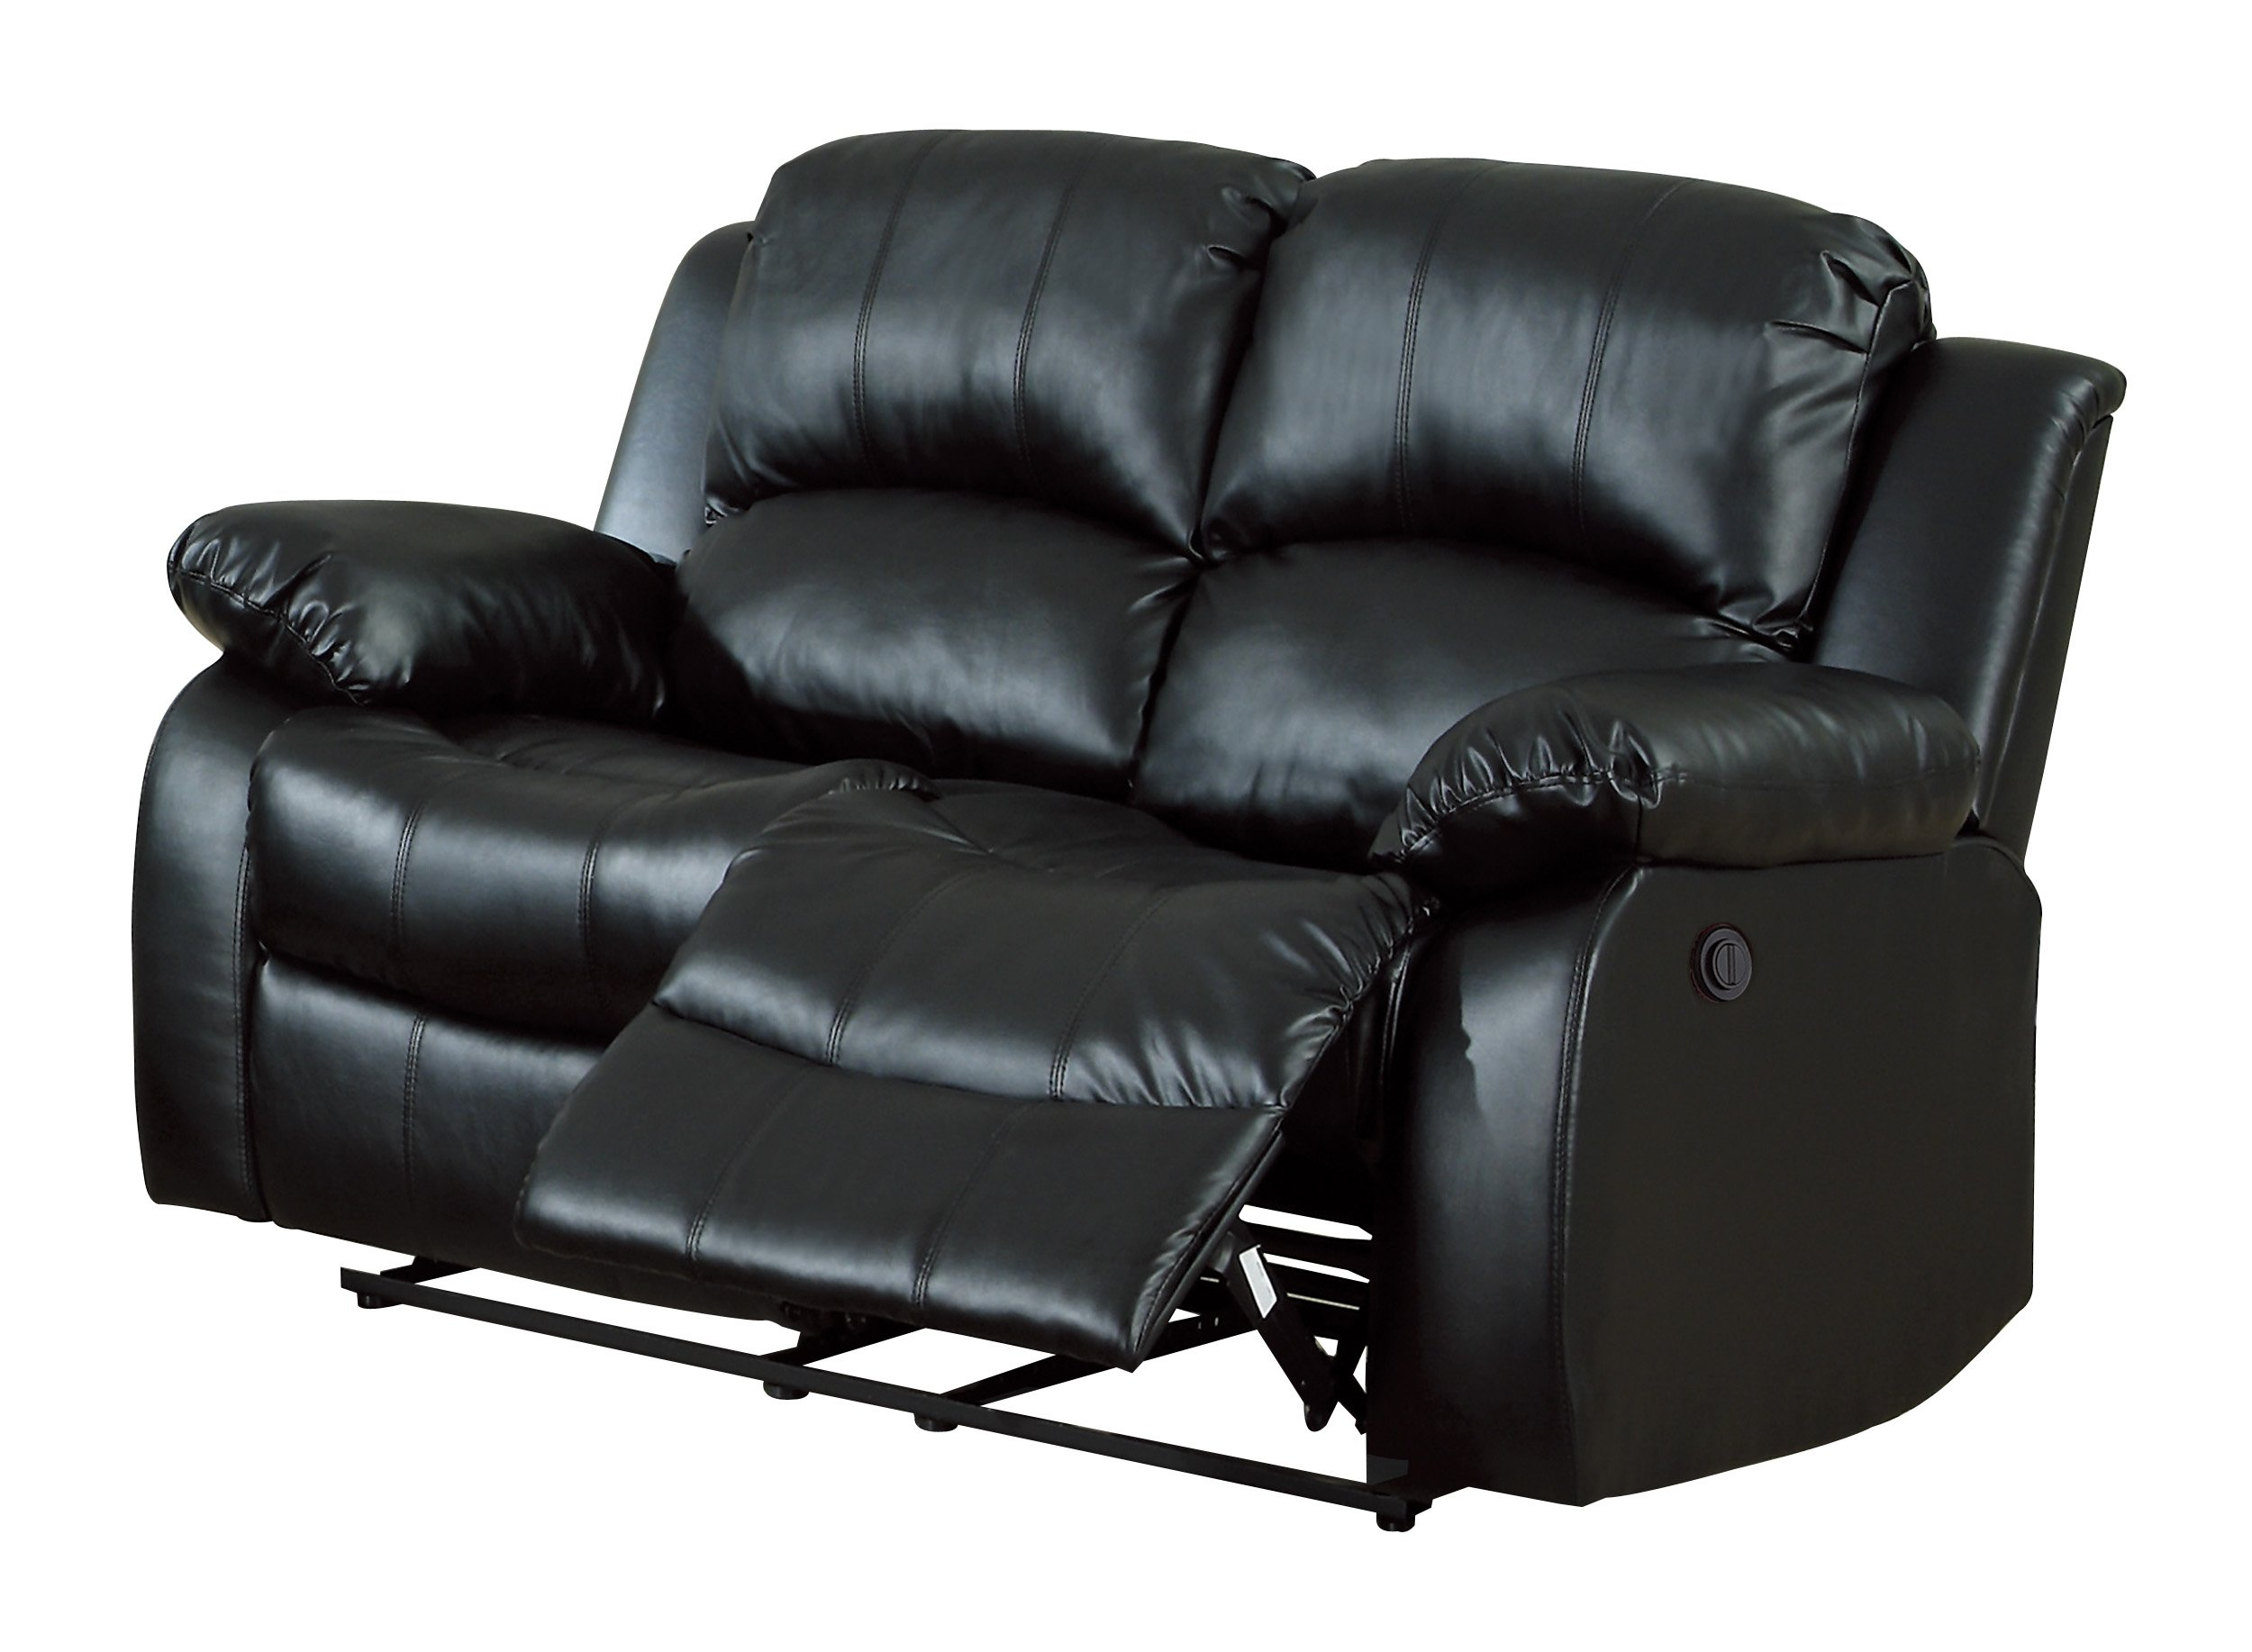 Homelegance 9700BLK-2PW Plushy Rolled Tufted Power Reclining Motion Bonded Leather  Love Seat, Black